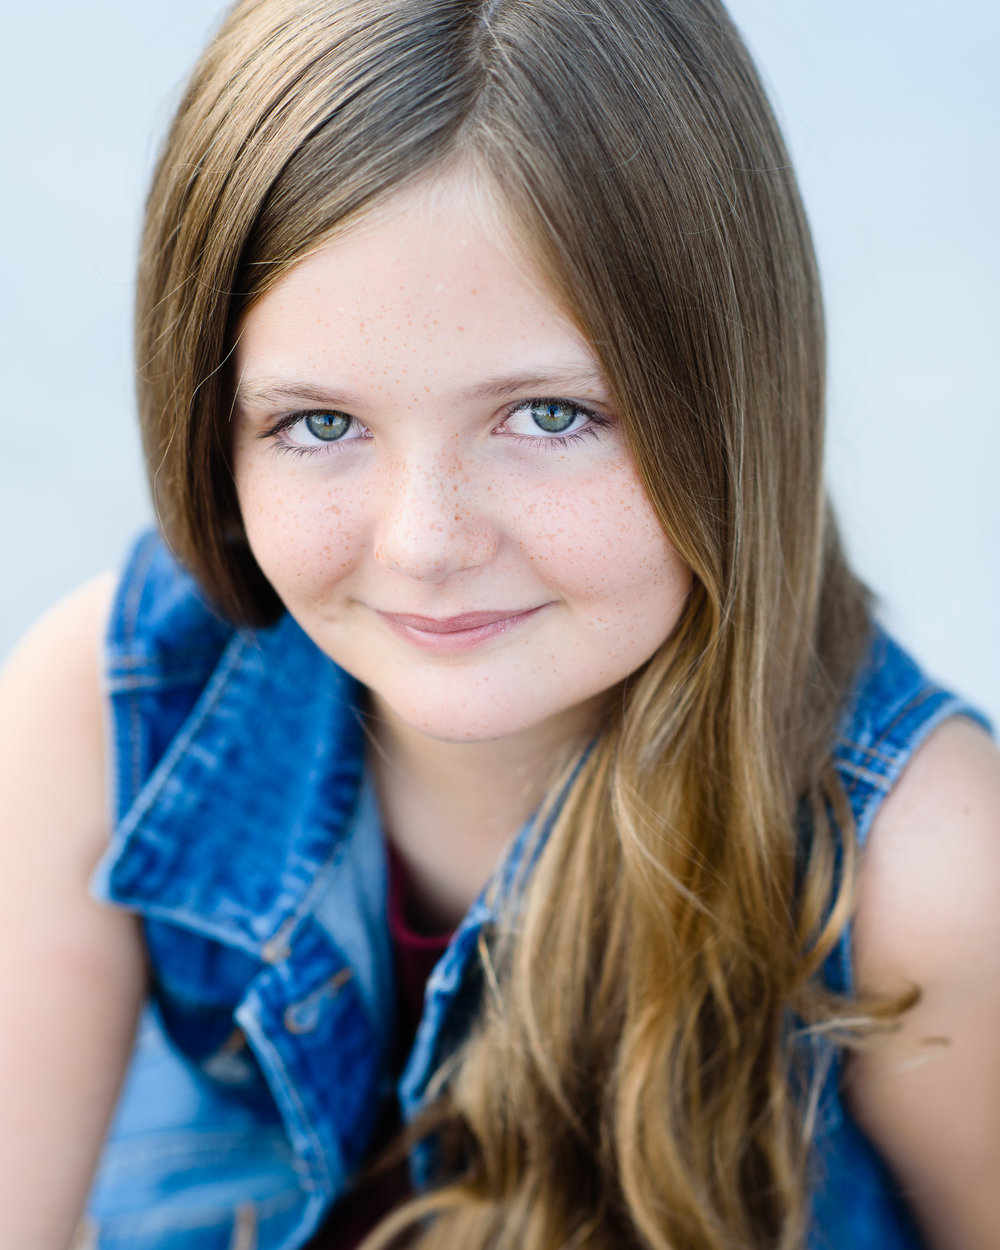 ChildrenHeadshots052.jpg